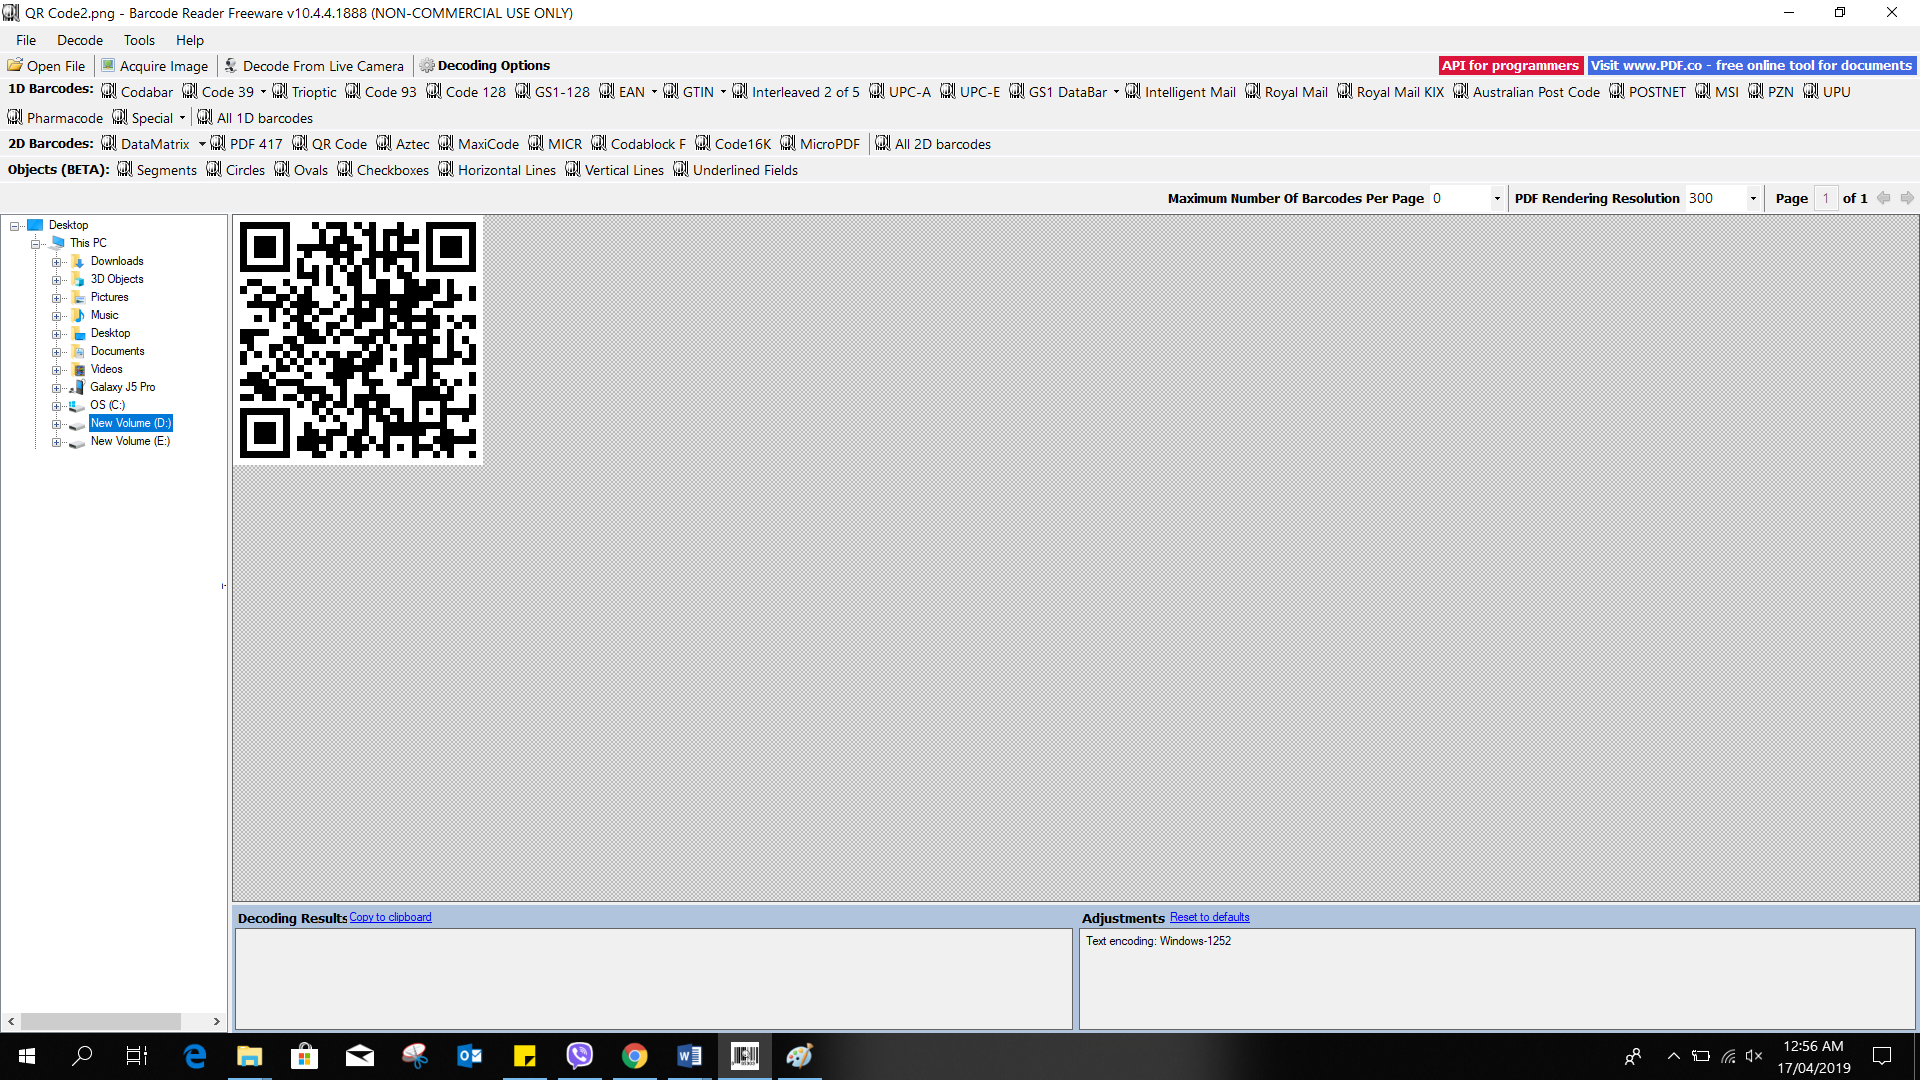 How to read QR codes with BarCode Reader - ByteScout